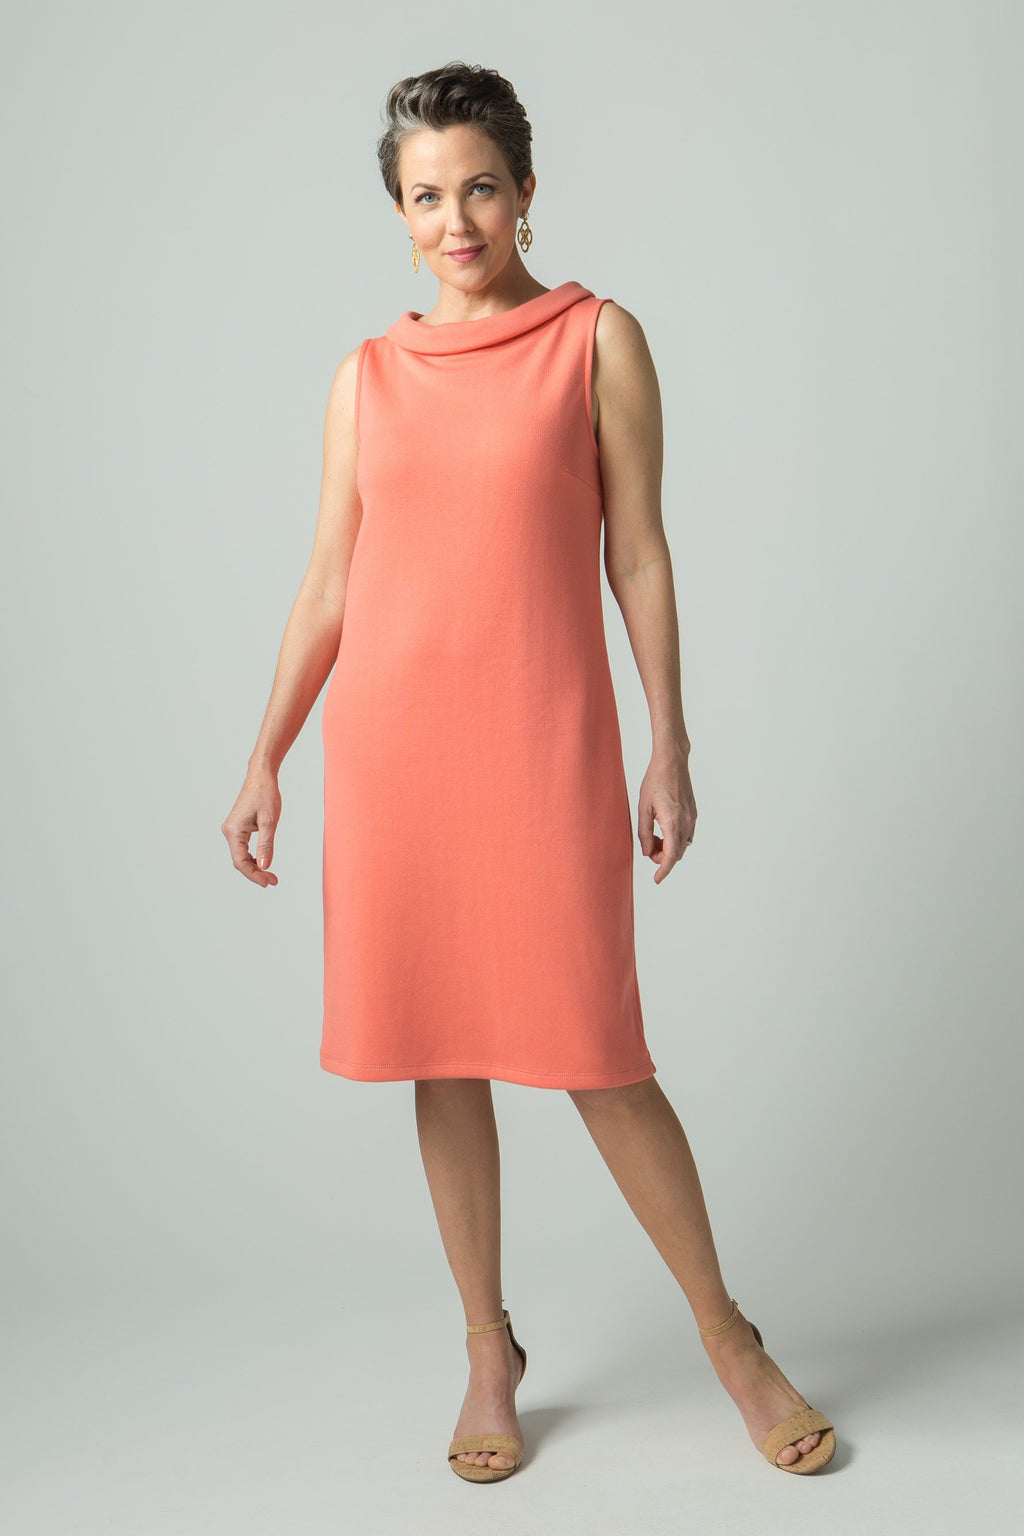 Sleeveless Bateau Neck Fitted Dress - New Orleans Knitwear